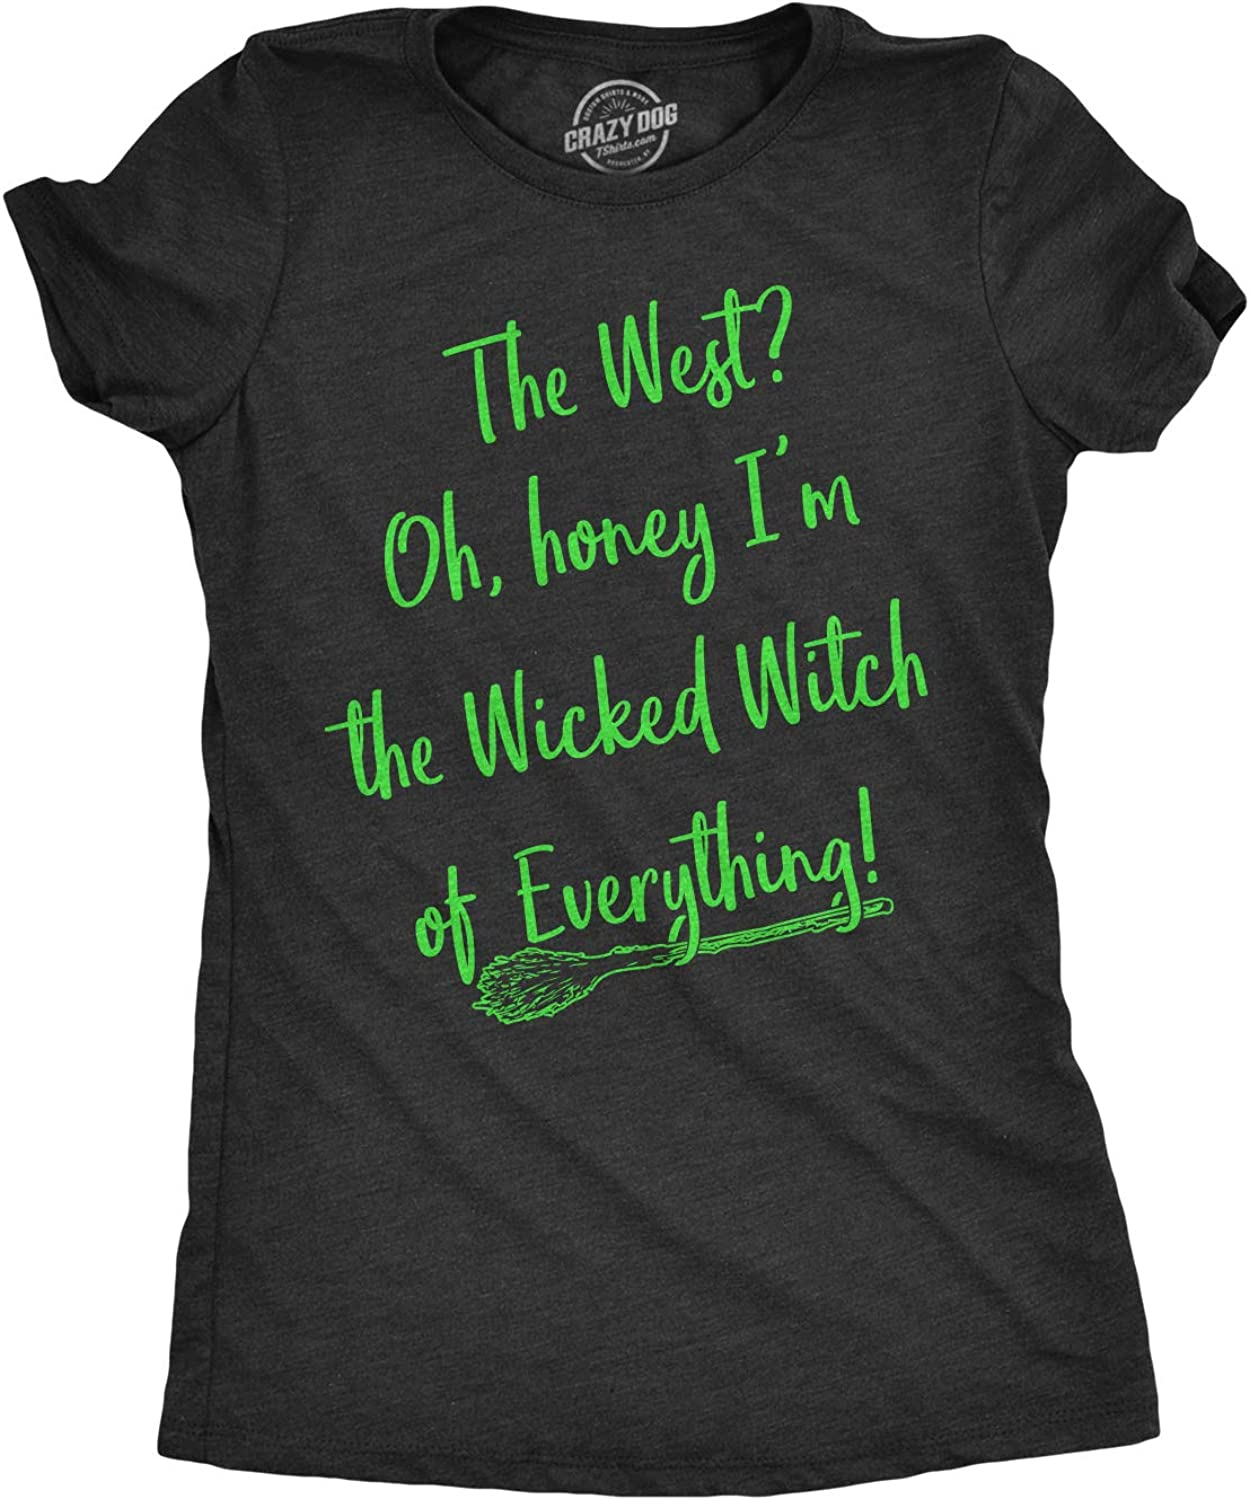 Funny Witch T Shirt Witch Shoes Shirt Cute Witch Shirt Summer Black Short Sleeve Womens T Shirt Witchy Clothing